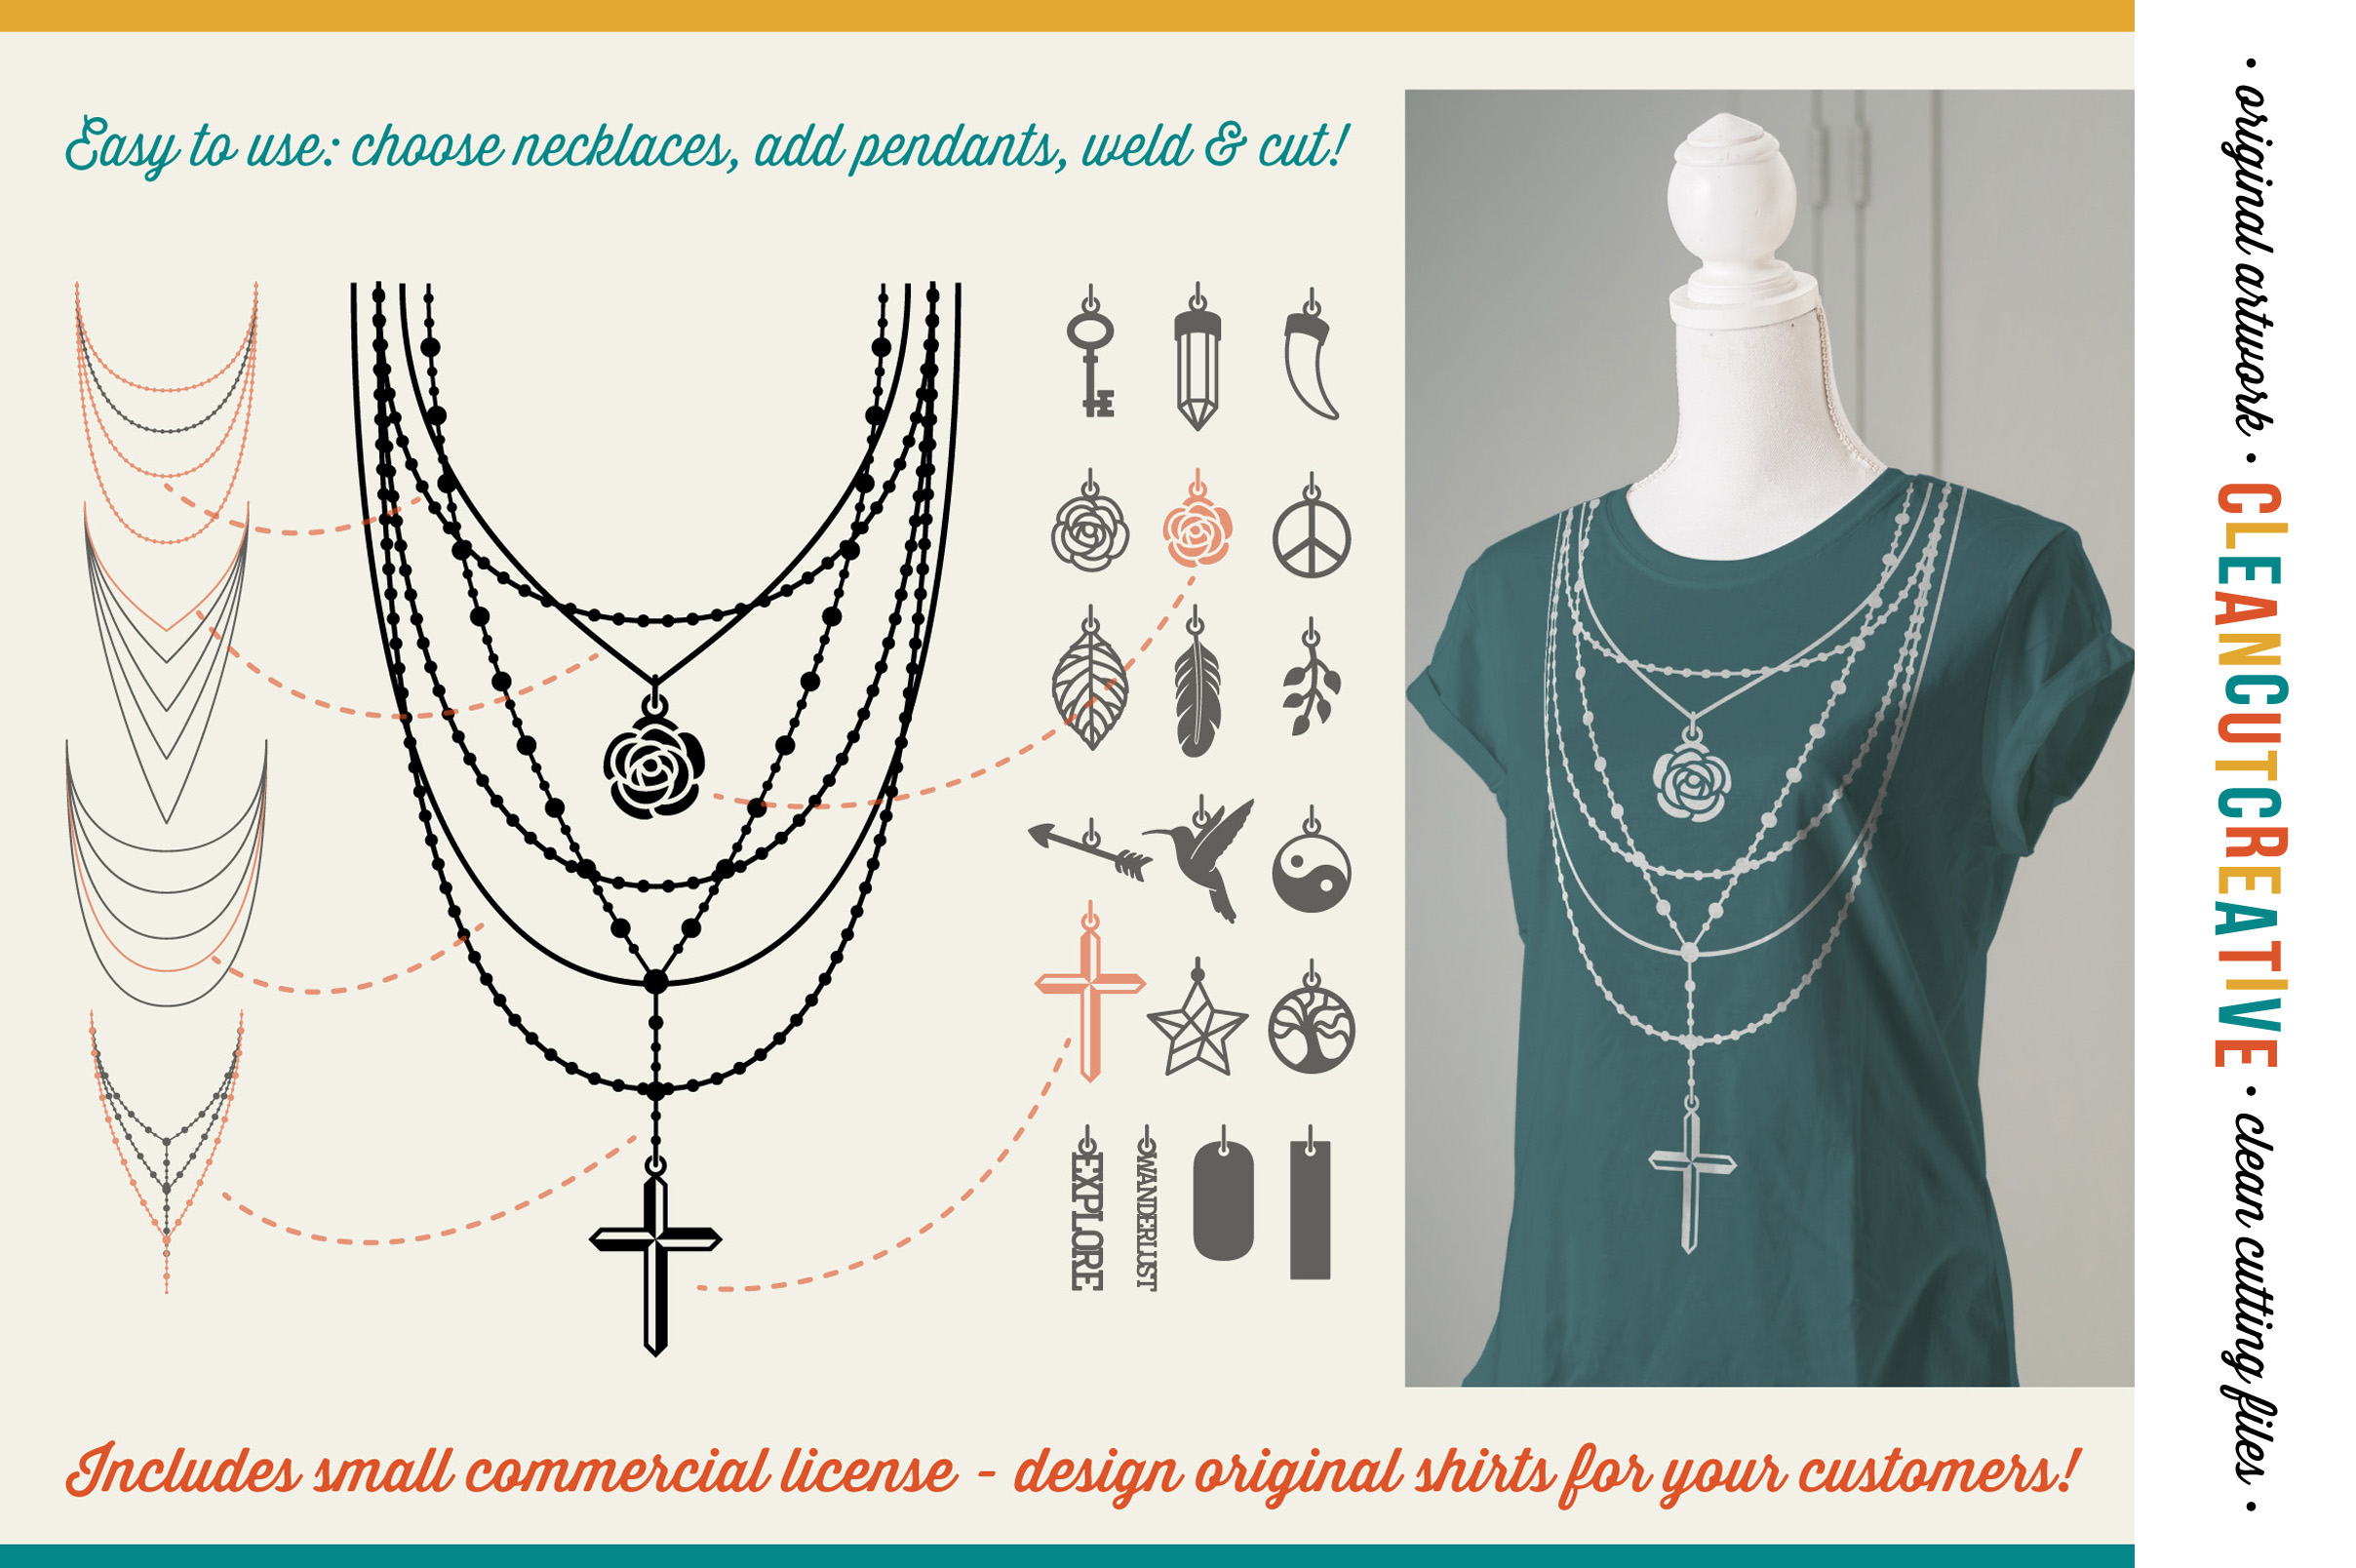 The Nifty NECKLACE TOOLKIT -  DIY Layered Necklace T-shirt Design in Boho/Ibiza Style example image 4